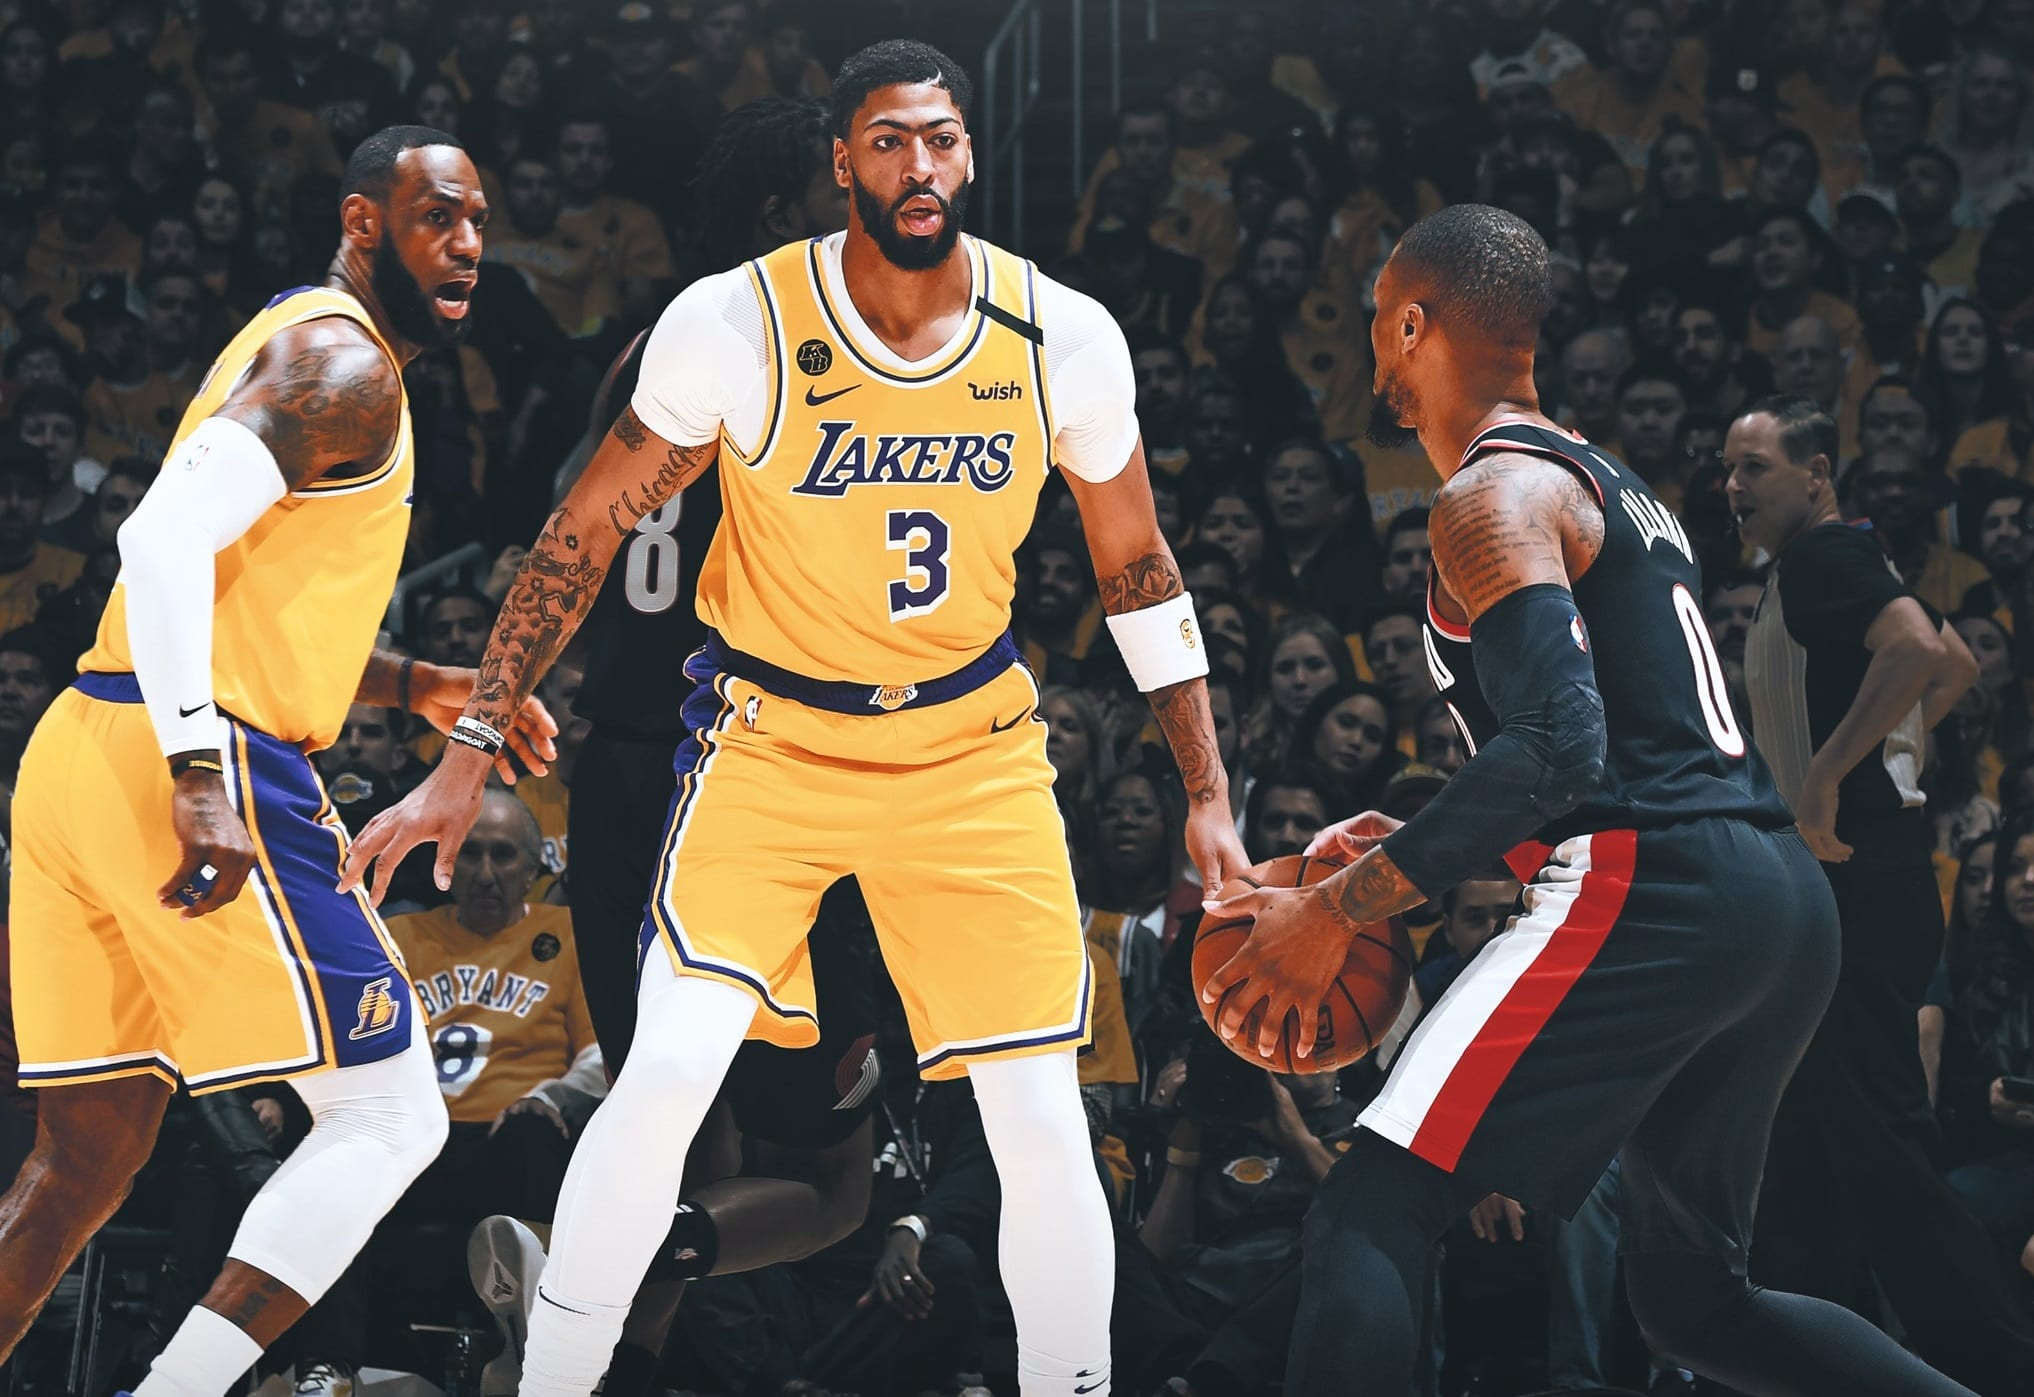 Lakers vs Blazers, Game 2: Picks, Predictions and Full Betting Insights